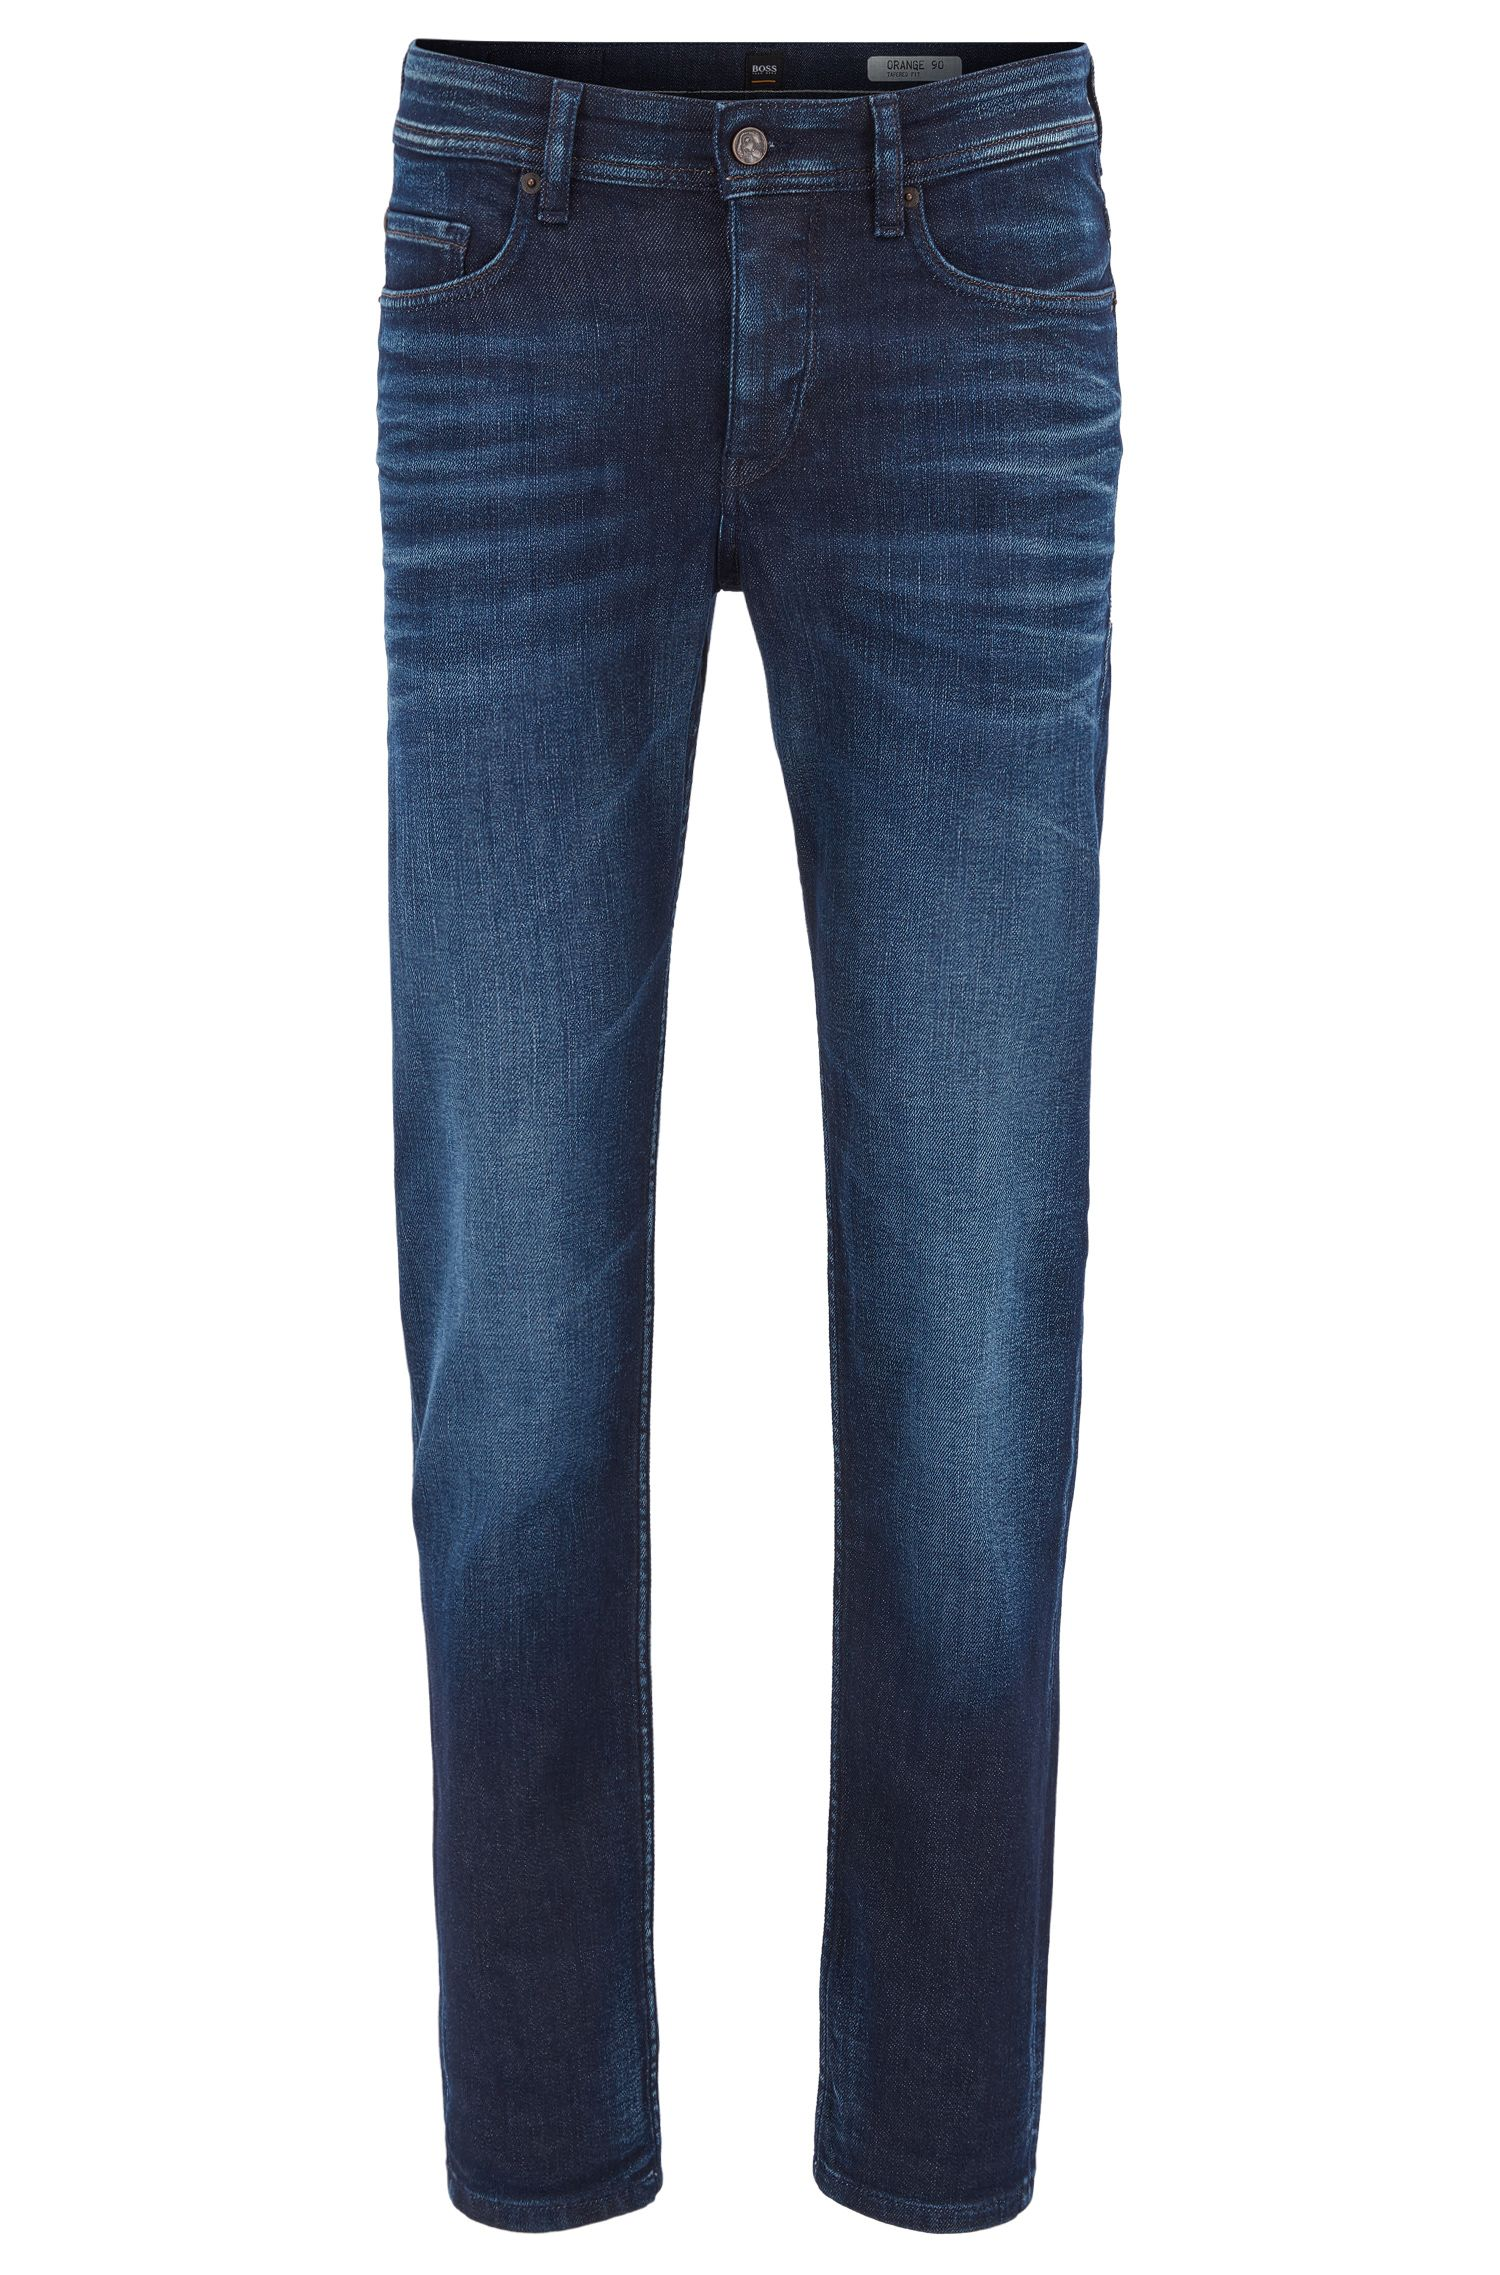 Jean Tapered Fit en denim stretch confortable